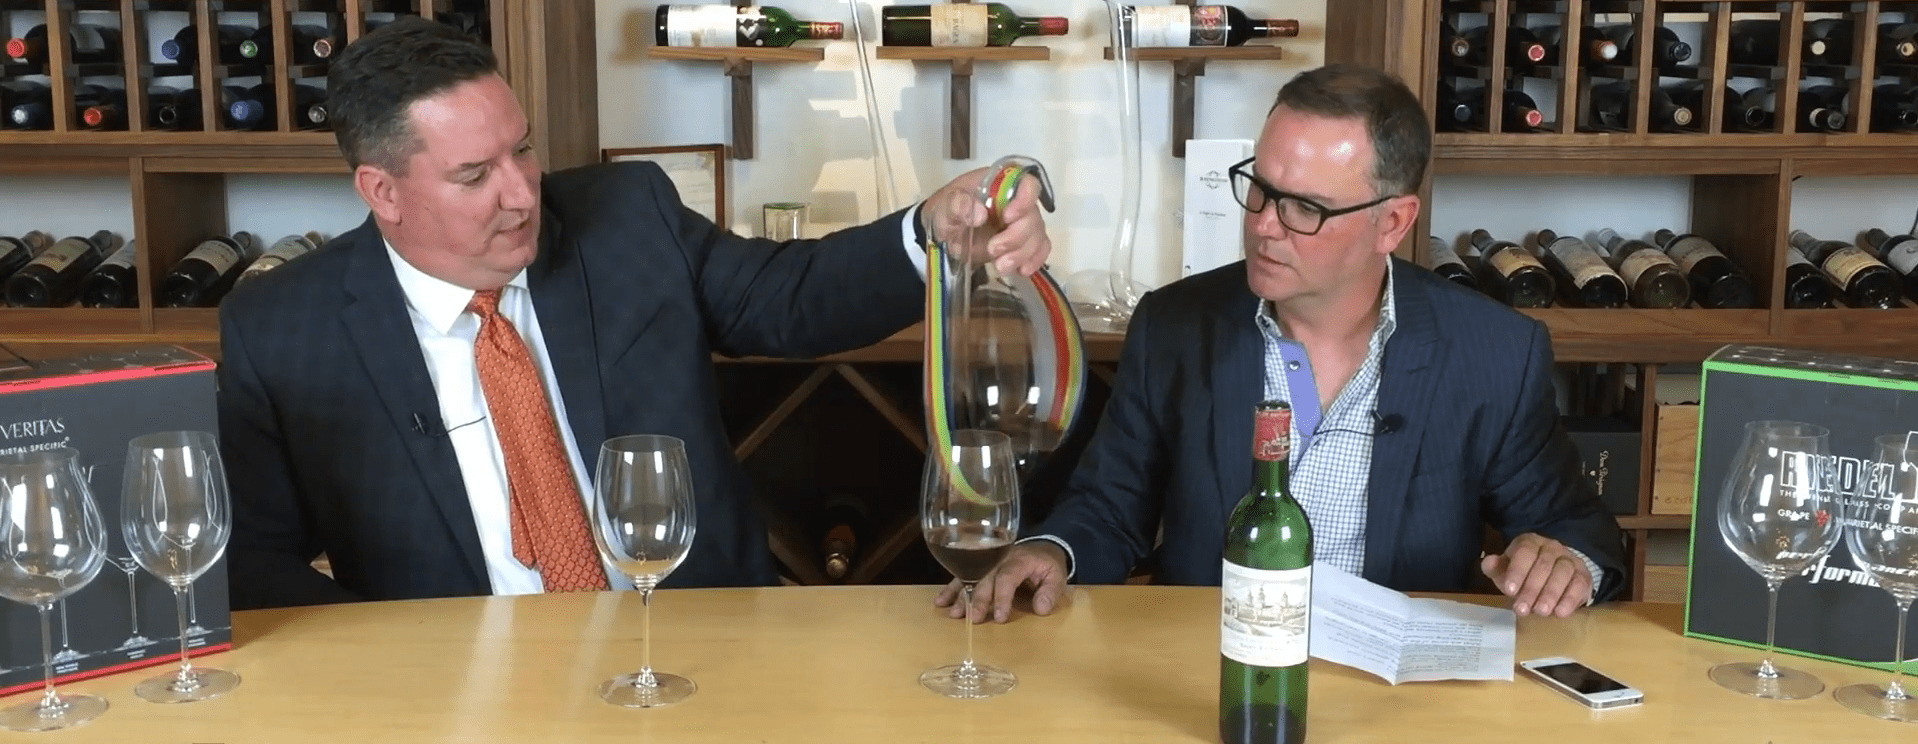 Behind Fine Wine | Riedel's Stewart Risto and Warren Porter Discuss Wine Stemware and Decanters